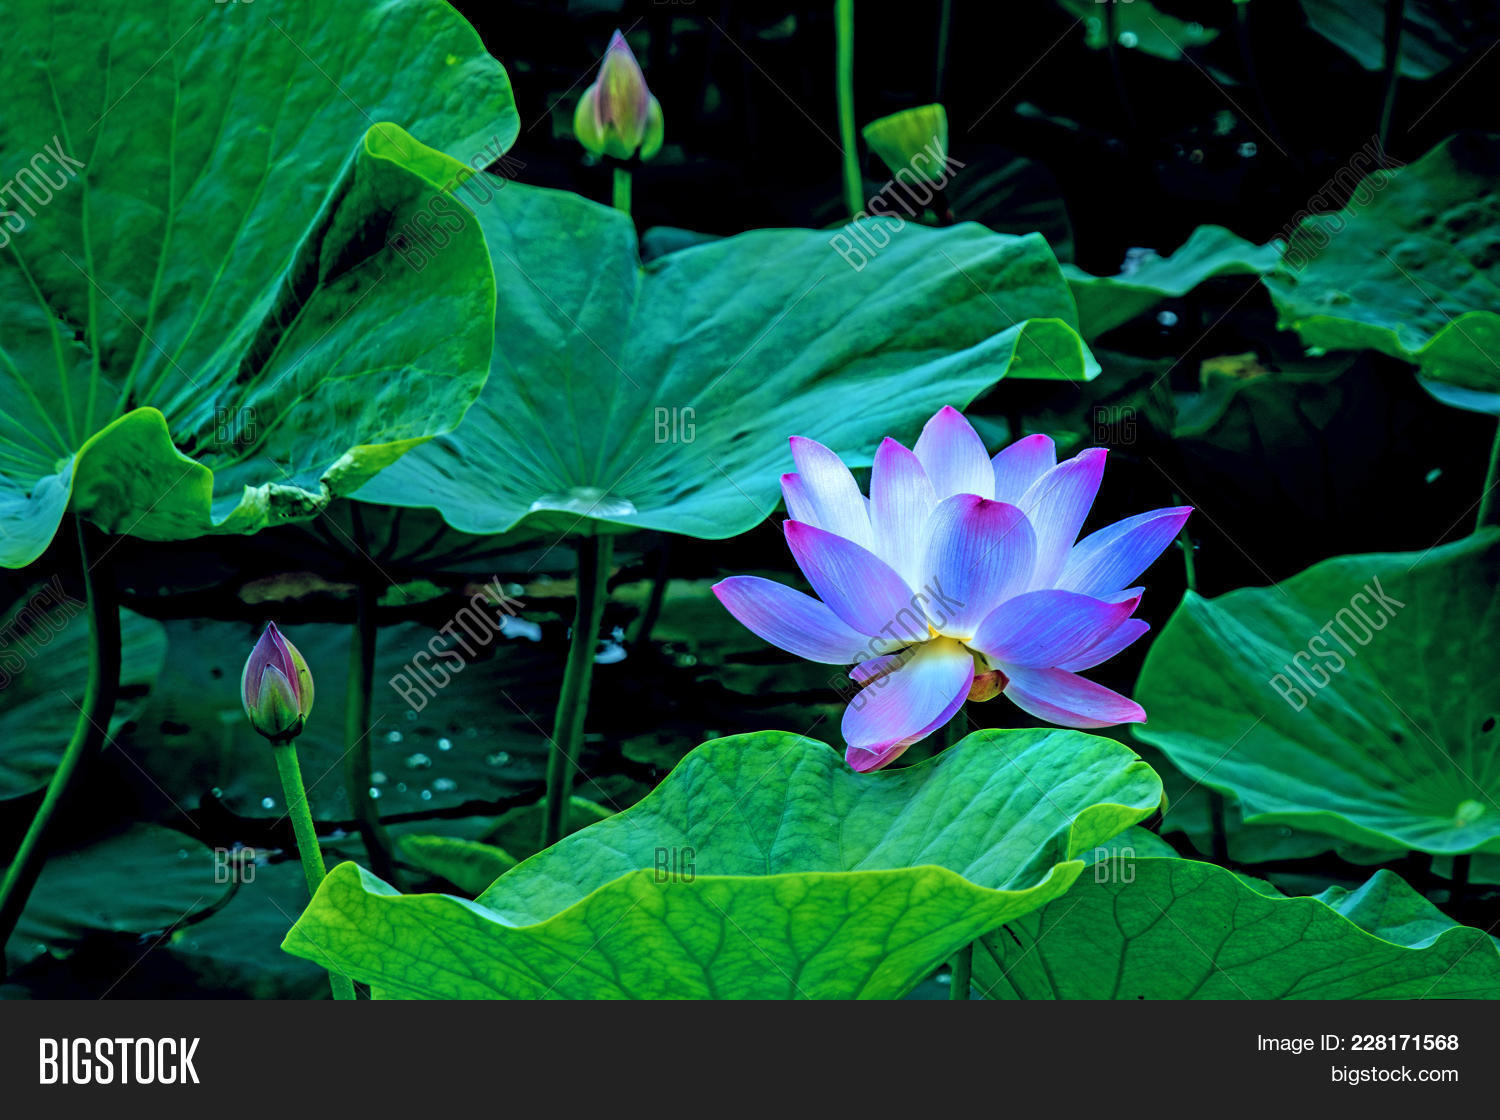 Large lotus flowers bright pink image photo bigstock large lotus flowers bright pink buds of lotus flower floating in the lake close mightylinksfo Image collections